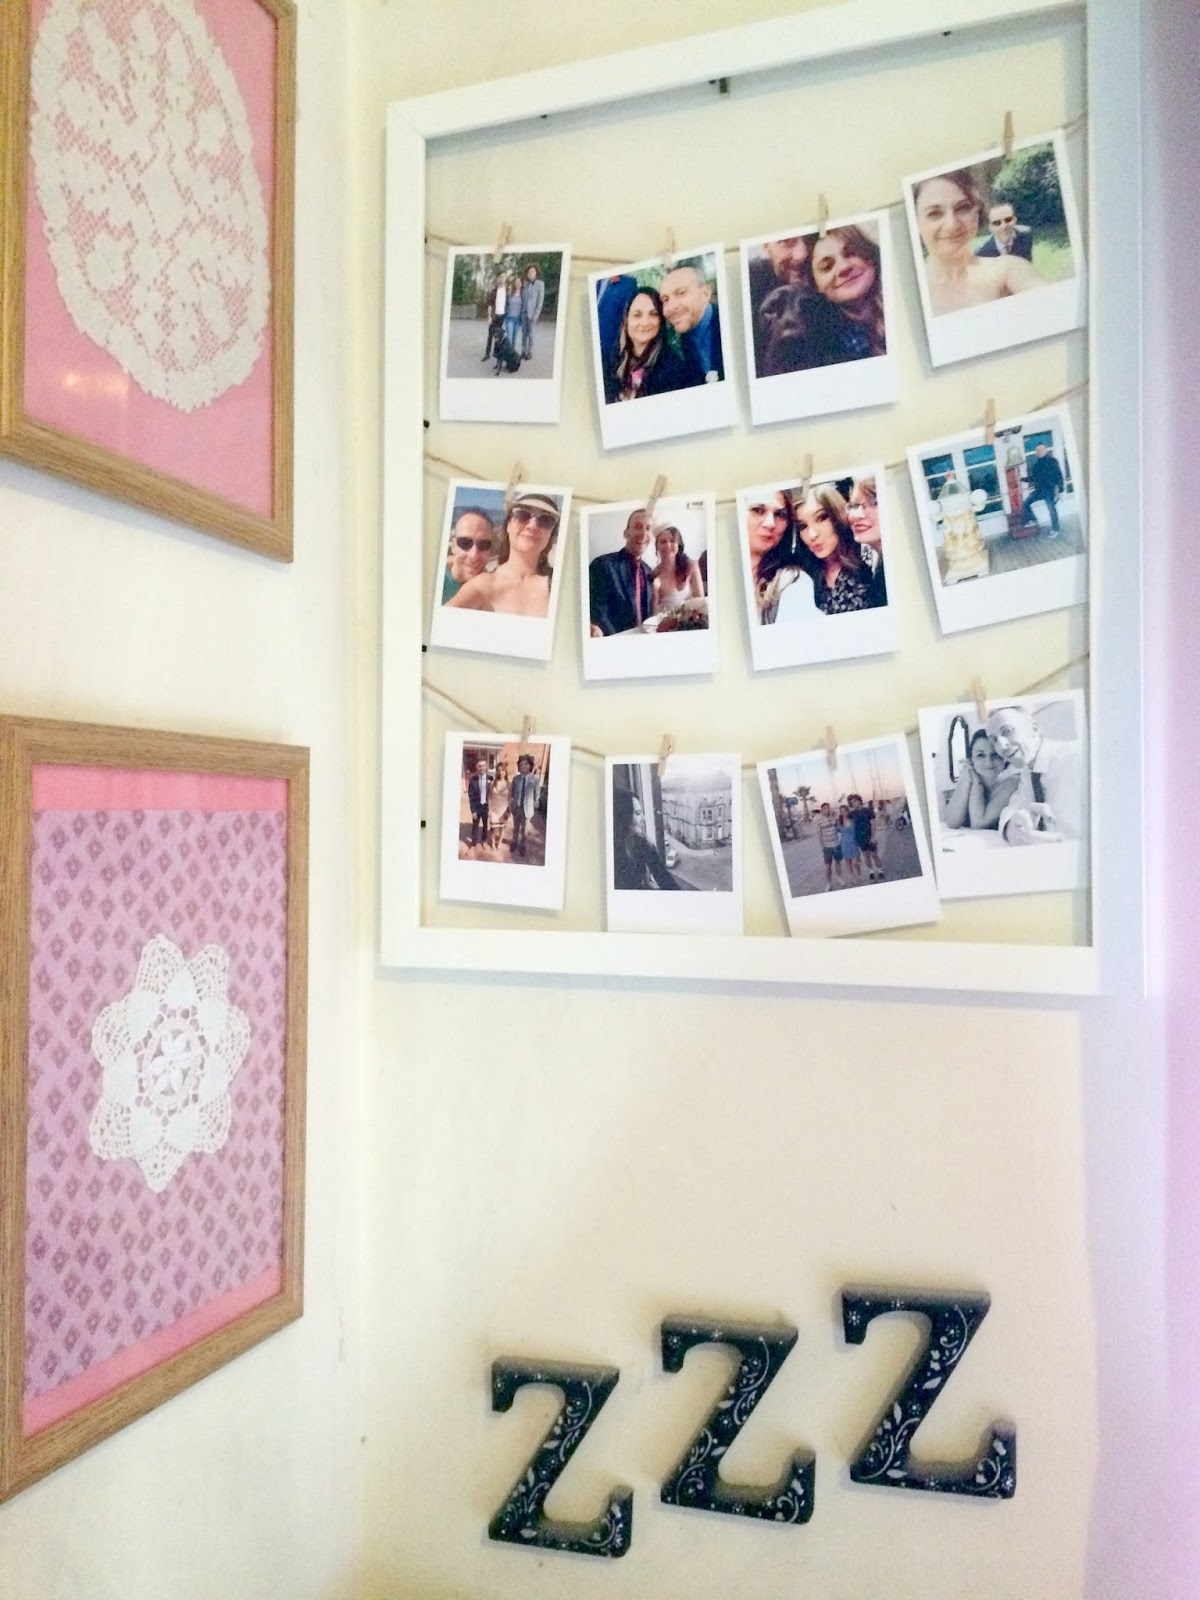 Pinterest worthy photo display using Instagram photos